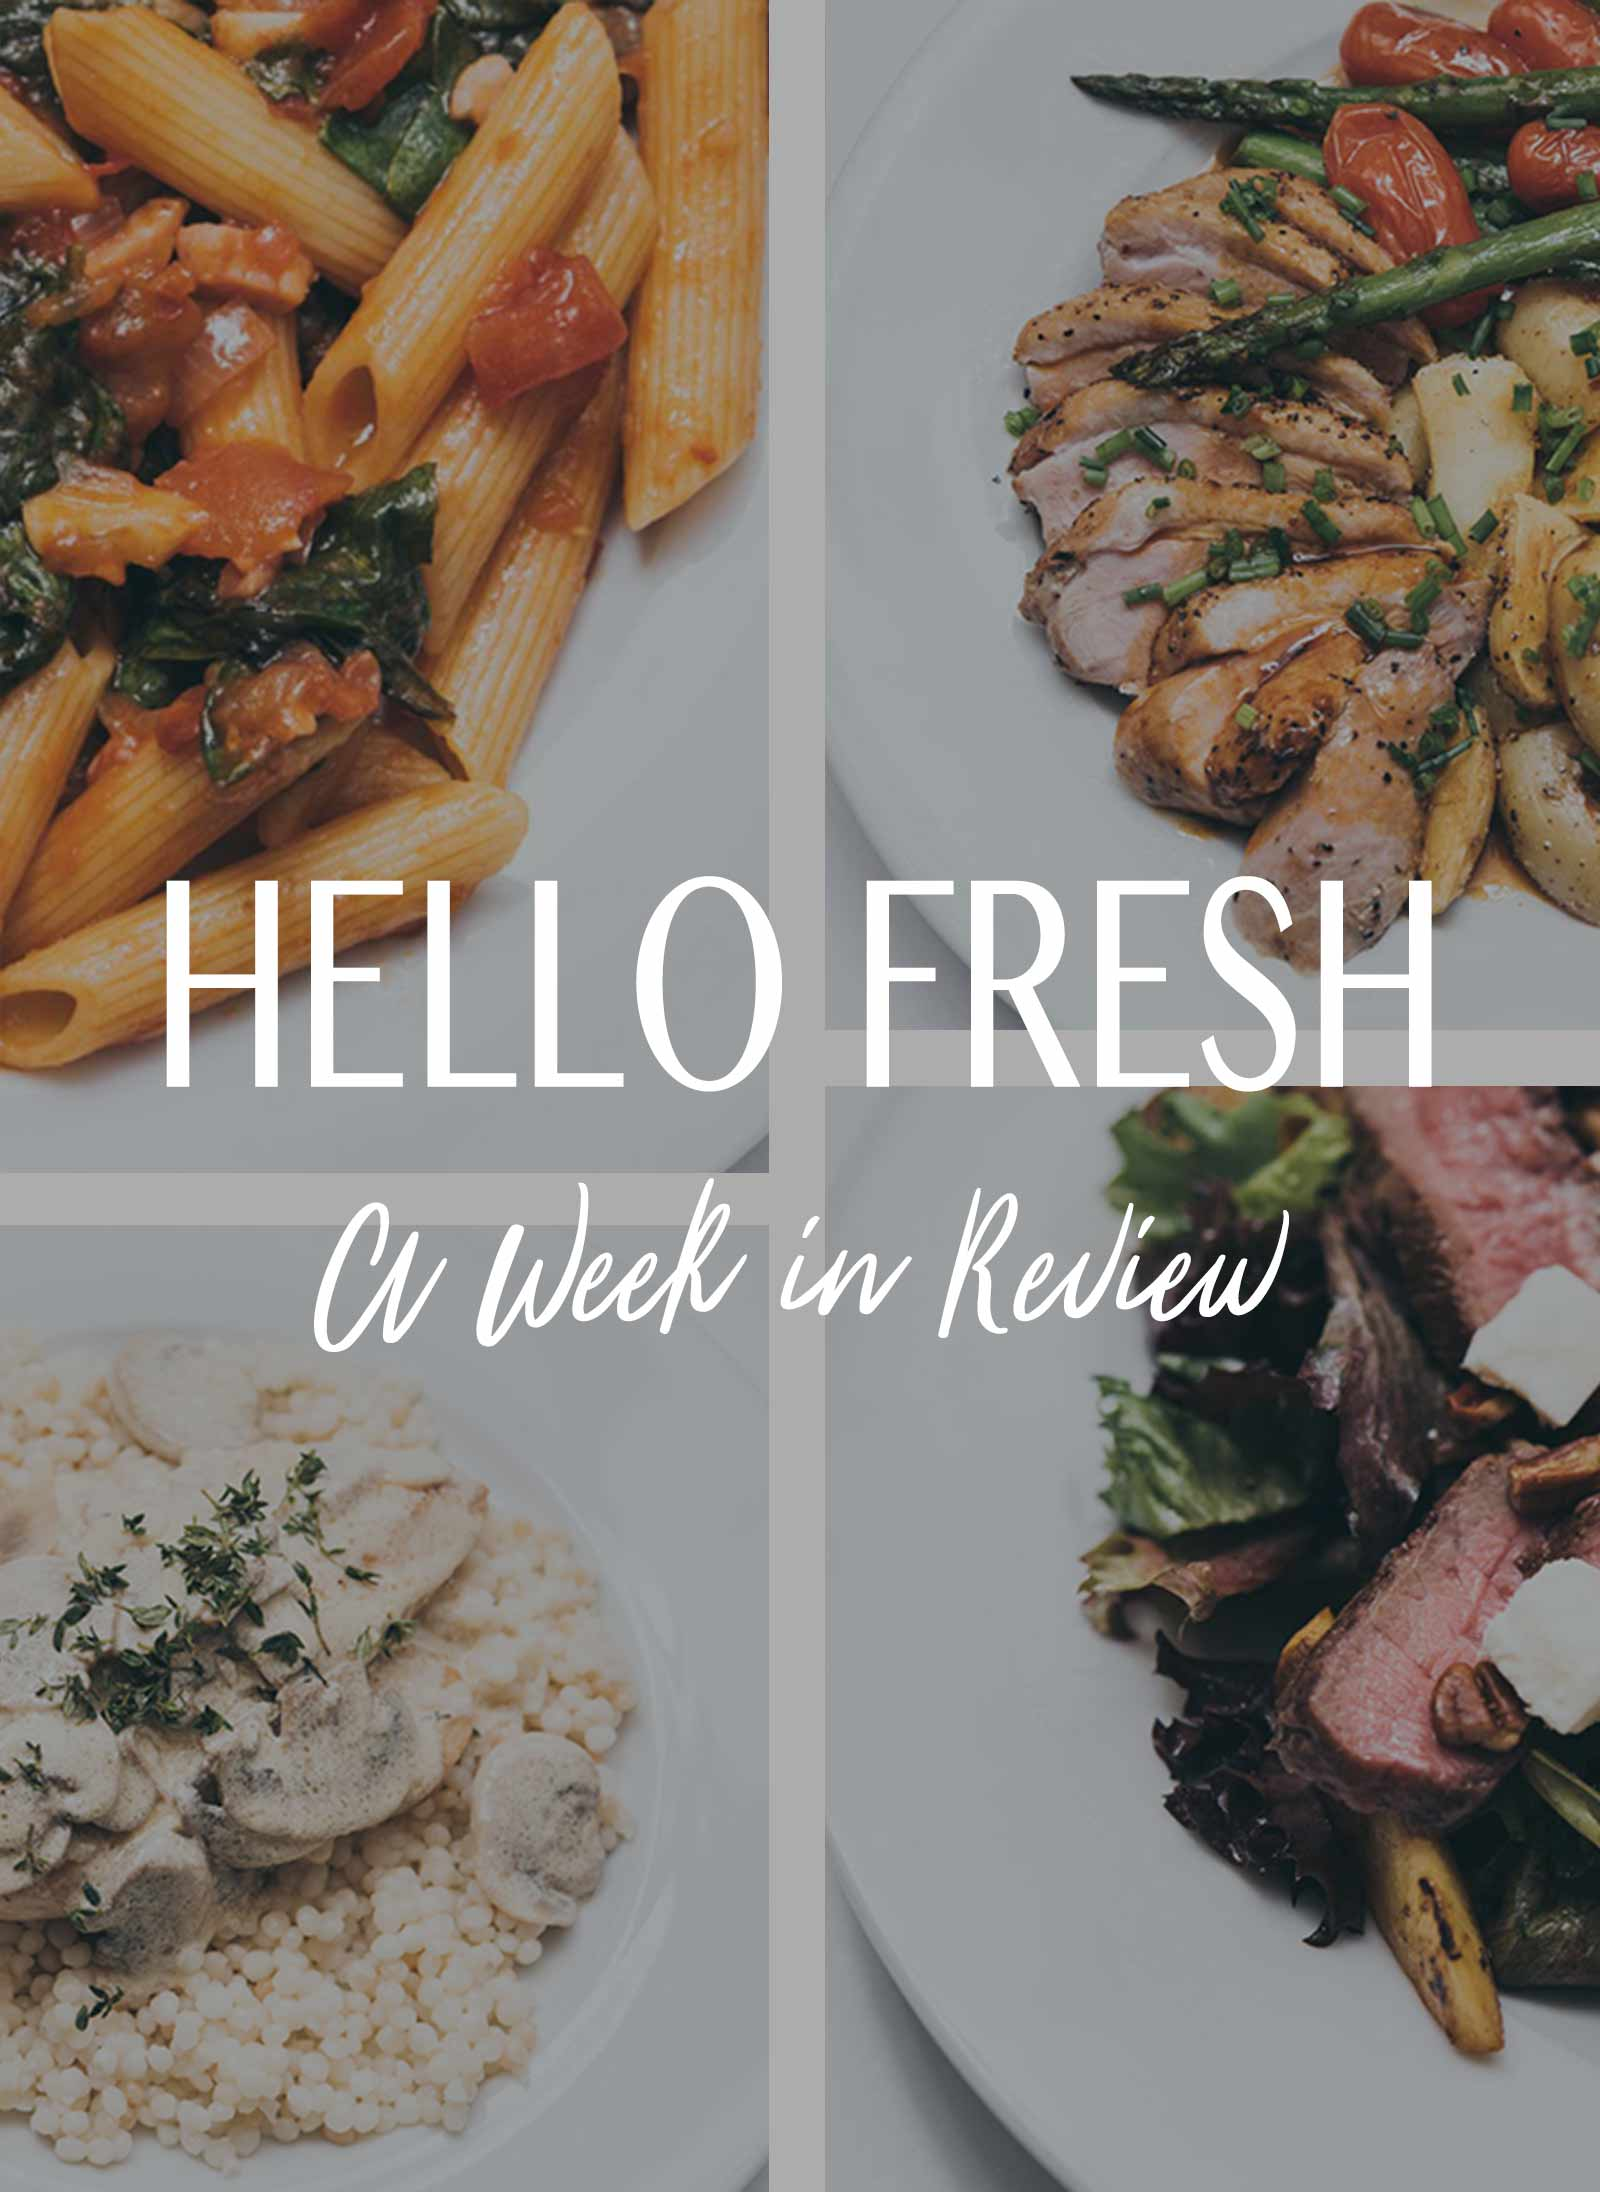 Hellofresh Meal Kit Delivery Service Coupon Code Student April